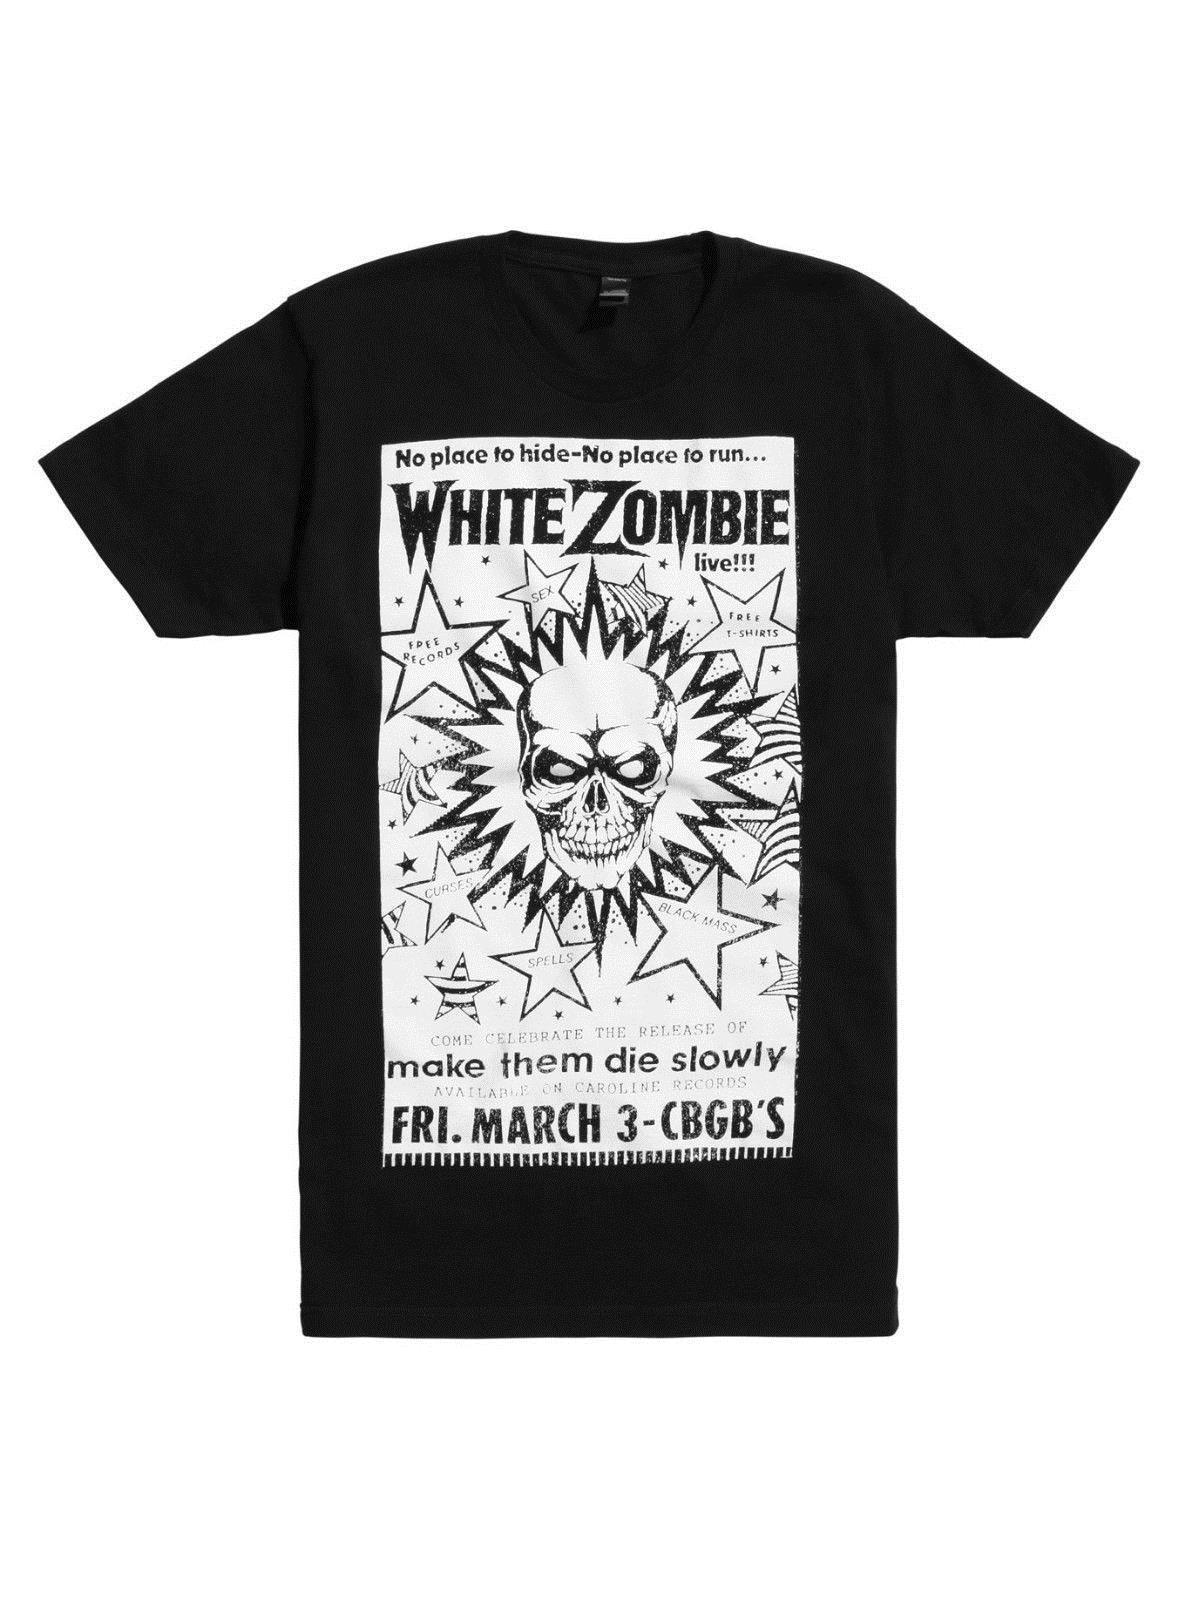 6e9022b48 New Design Cotton Male Tee Shirt Designing White Zombie Flyer T Shirt,  Medium Clever Funny T Shirts Funny Tshirts From Caisemao10, $15.22|  DHgate.Com